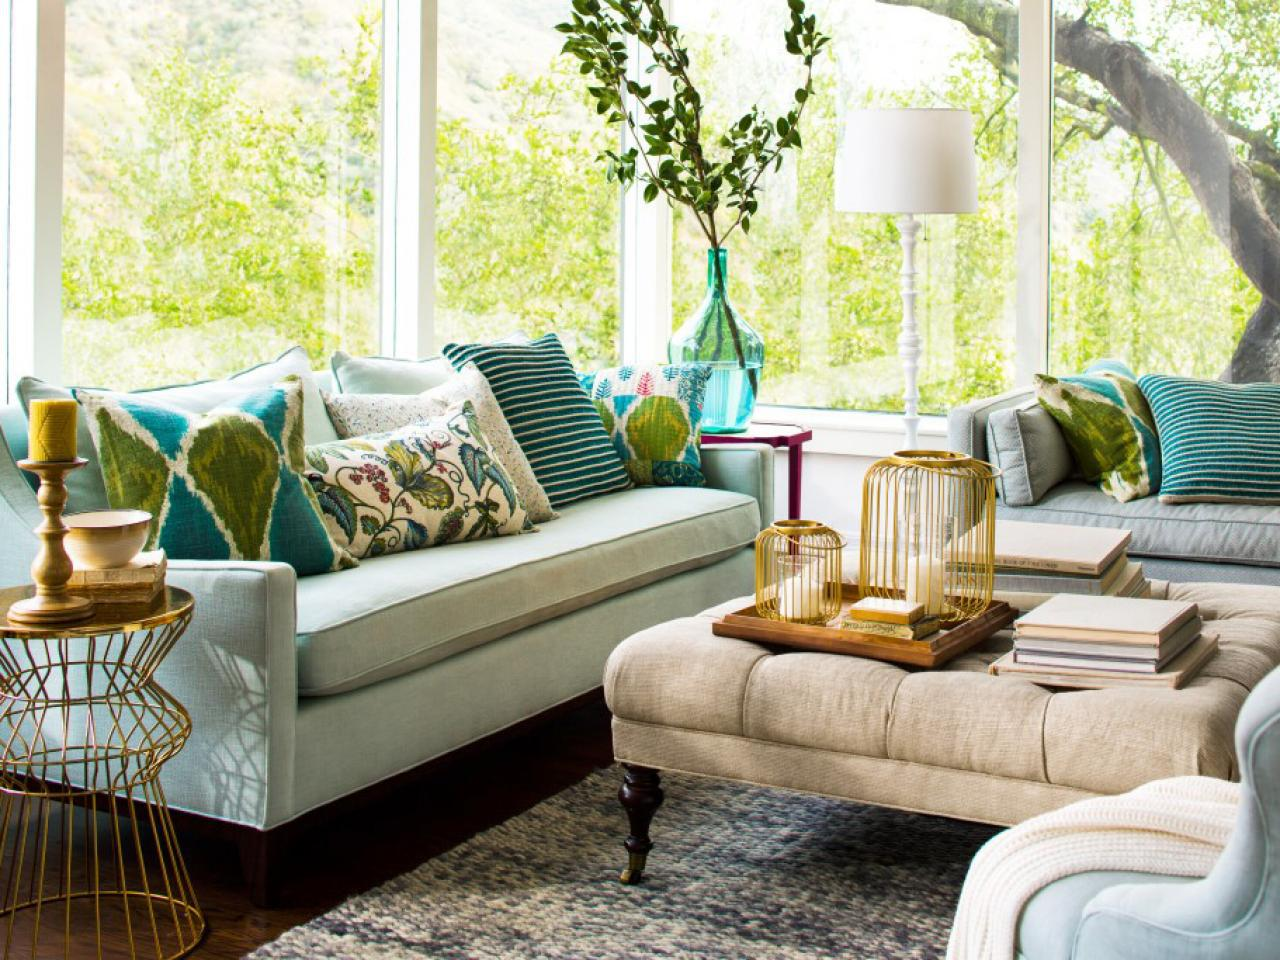 how-to-make-your-conservatory-the-most-relaxing-room-in-the-house